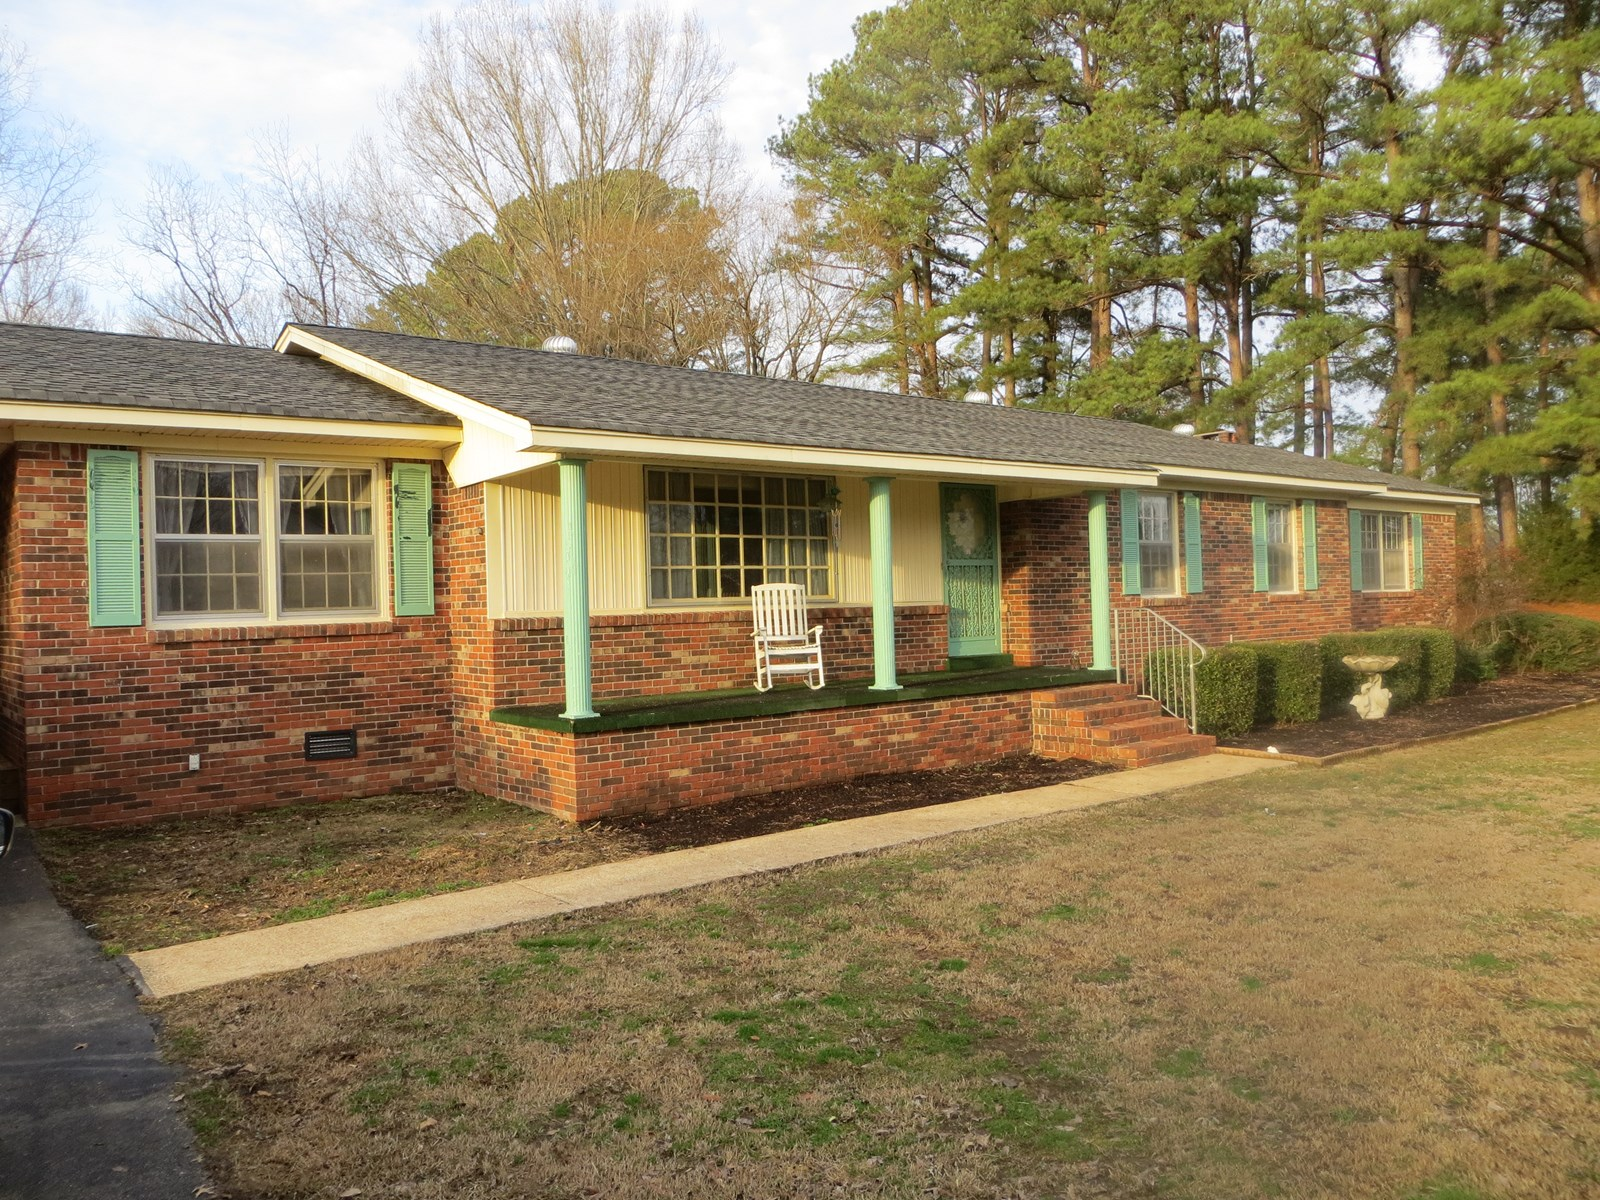 Ranch home for sale in Huntingdon TN, Fireplace, Buildings